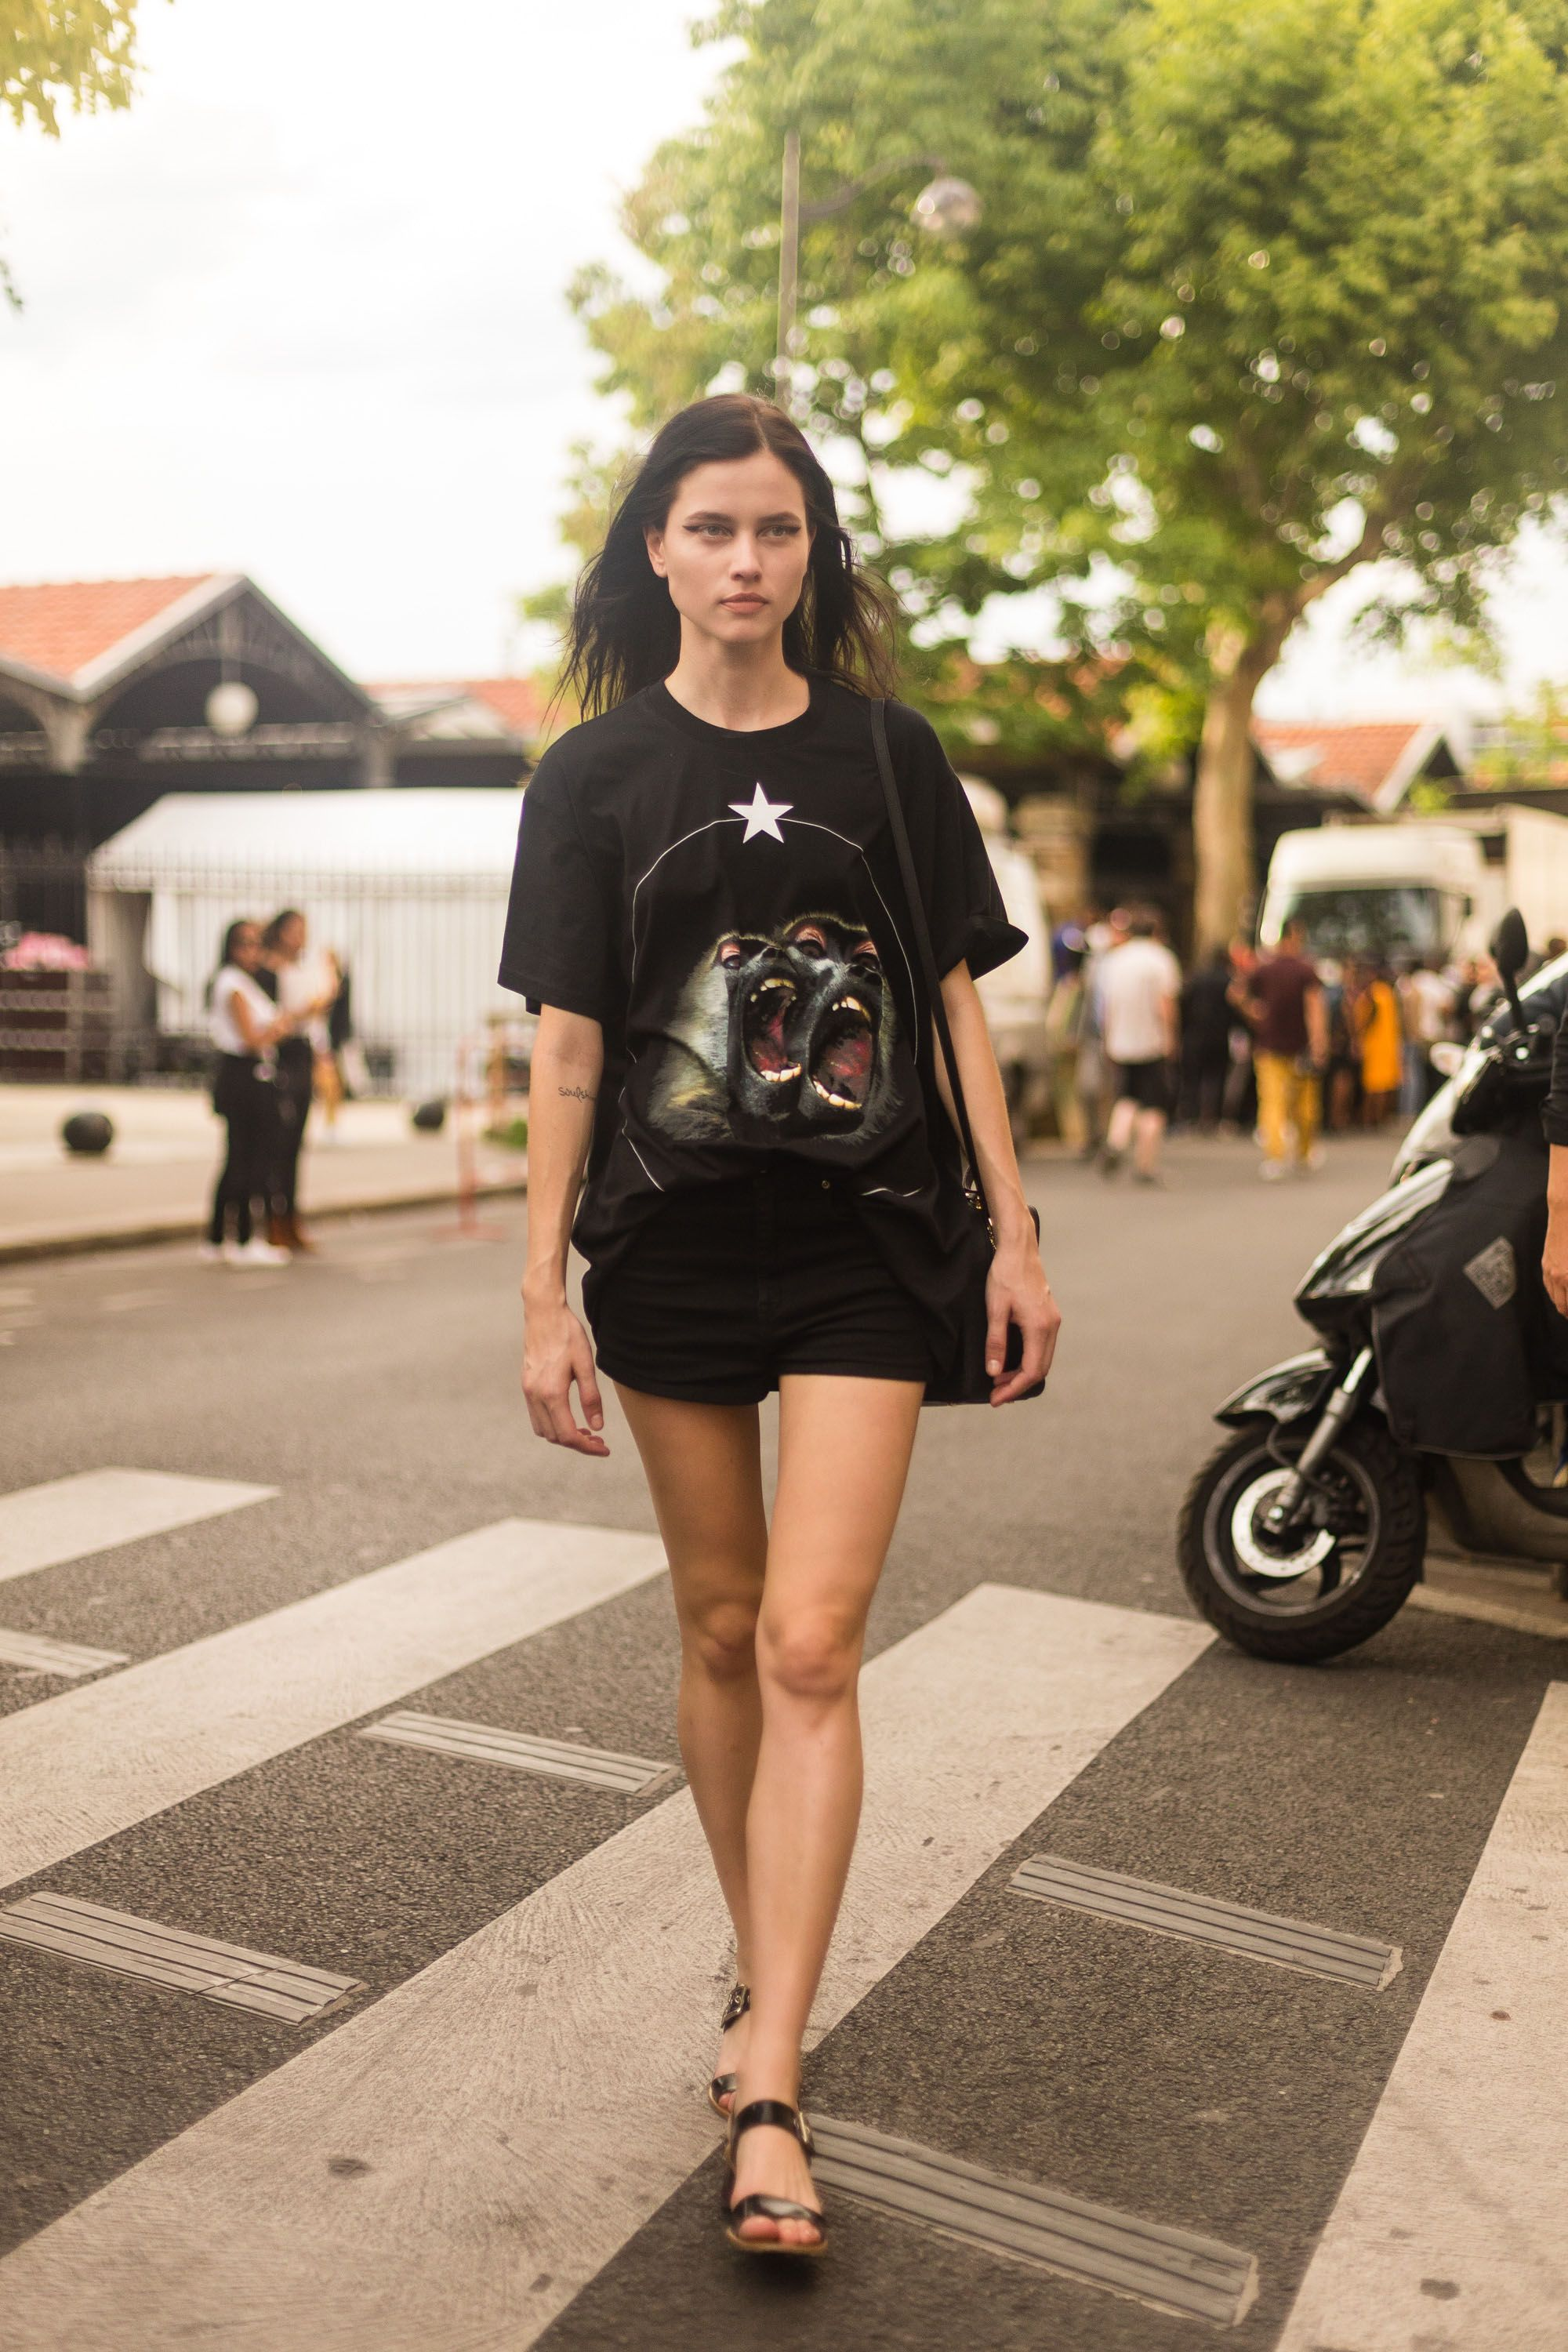 PARIS, FRANCE - JUNE 26:  Model Isis Bataglia exits the Givenchy show in a Givenchy t-shirt on June 26, 2015 in Paris, France.  (Photo by Melodie Jeng/Getty Images)